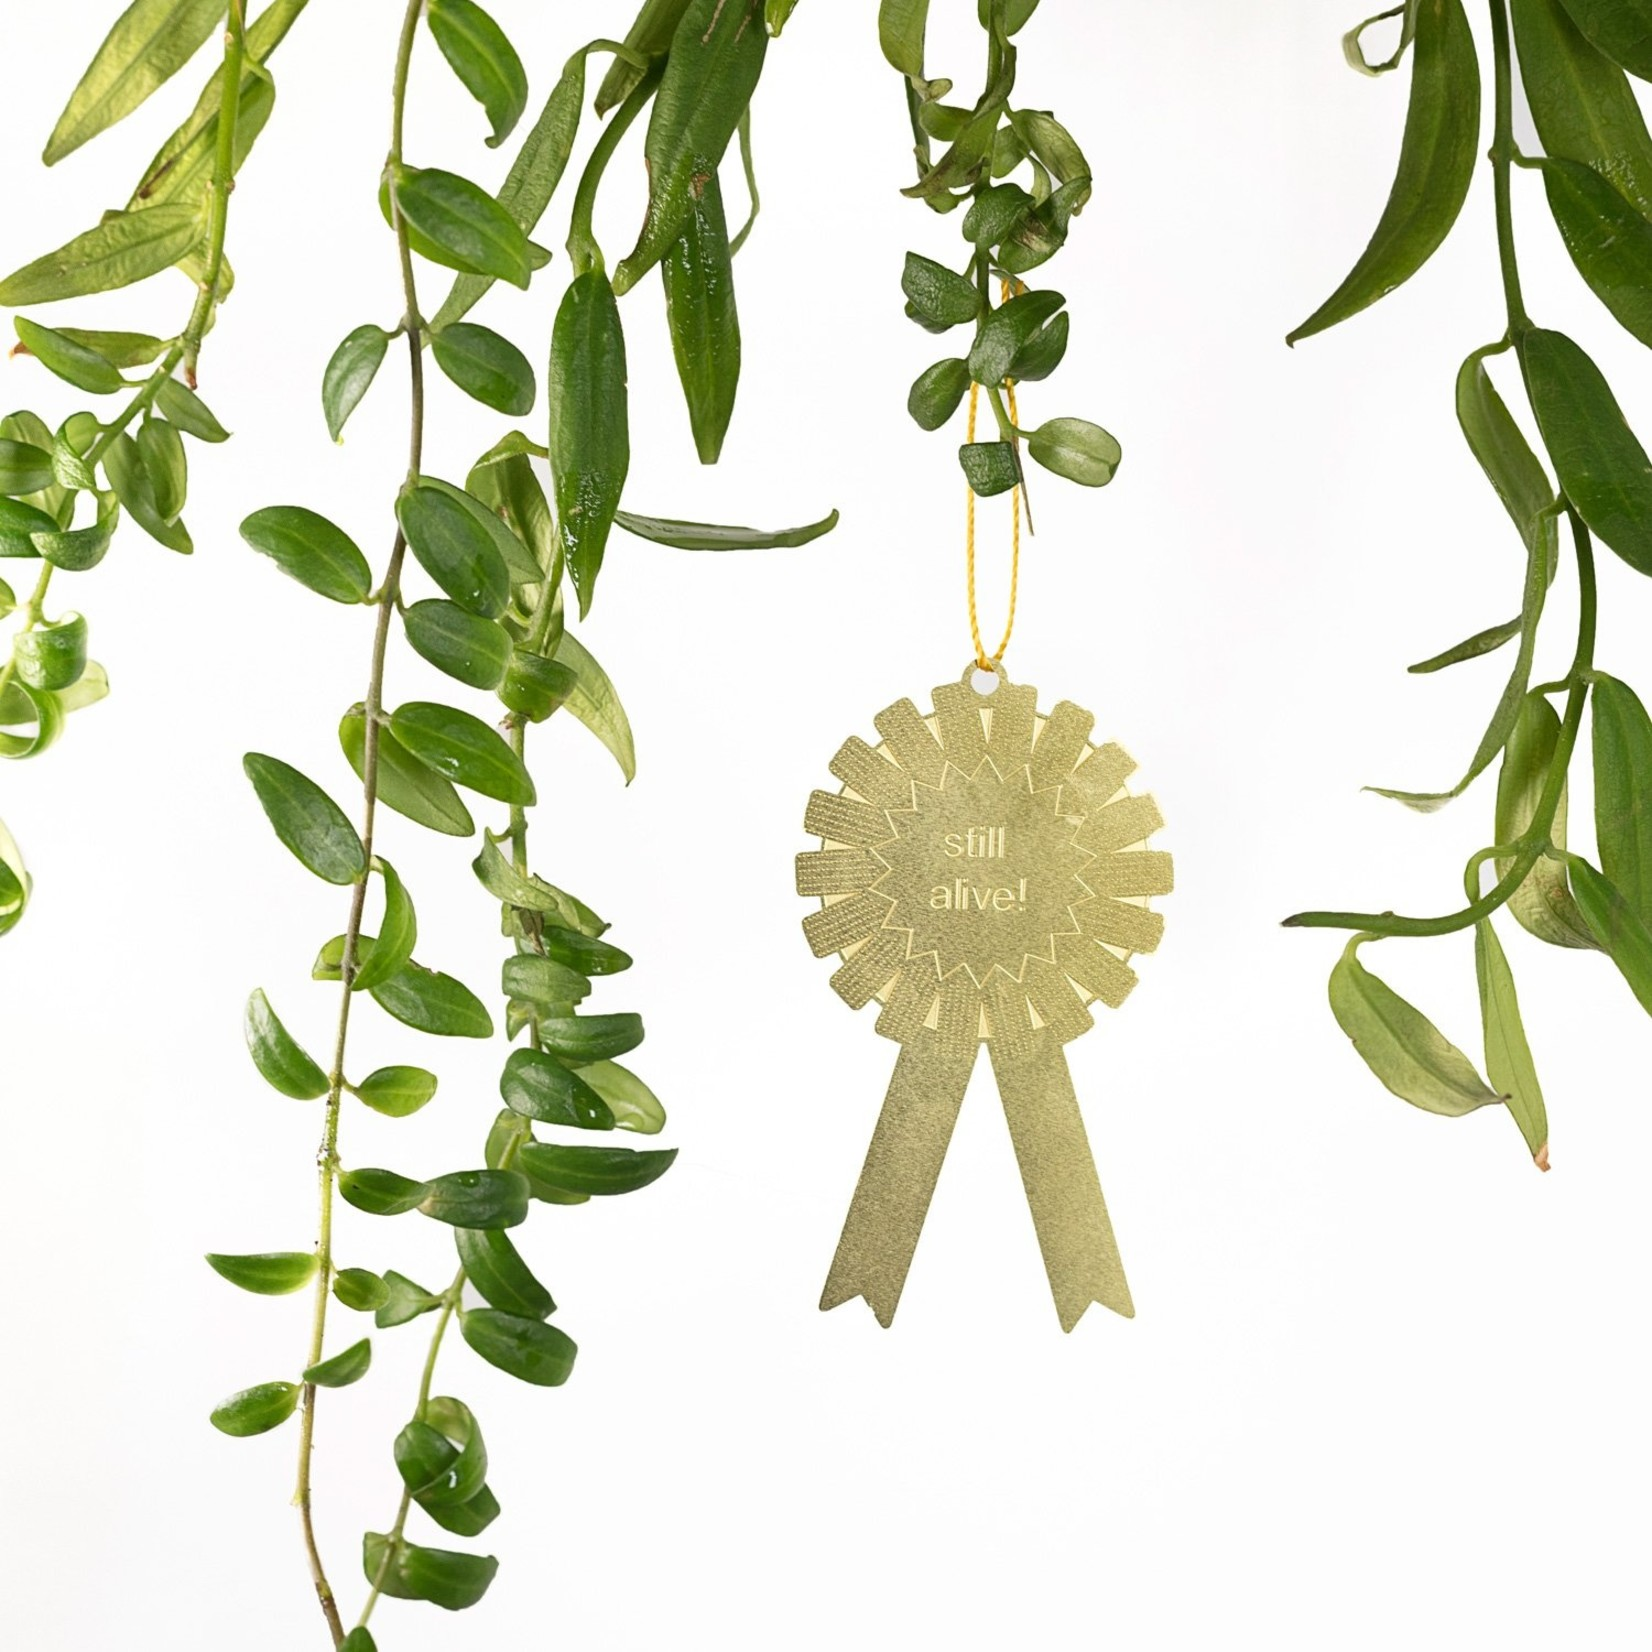 Another Studio for Design Plant Award: